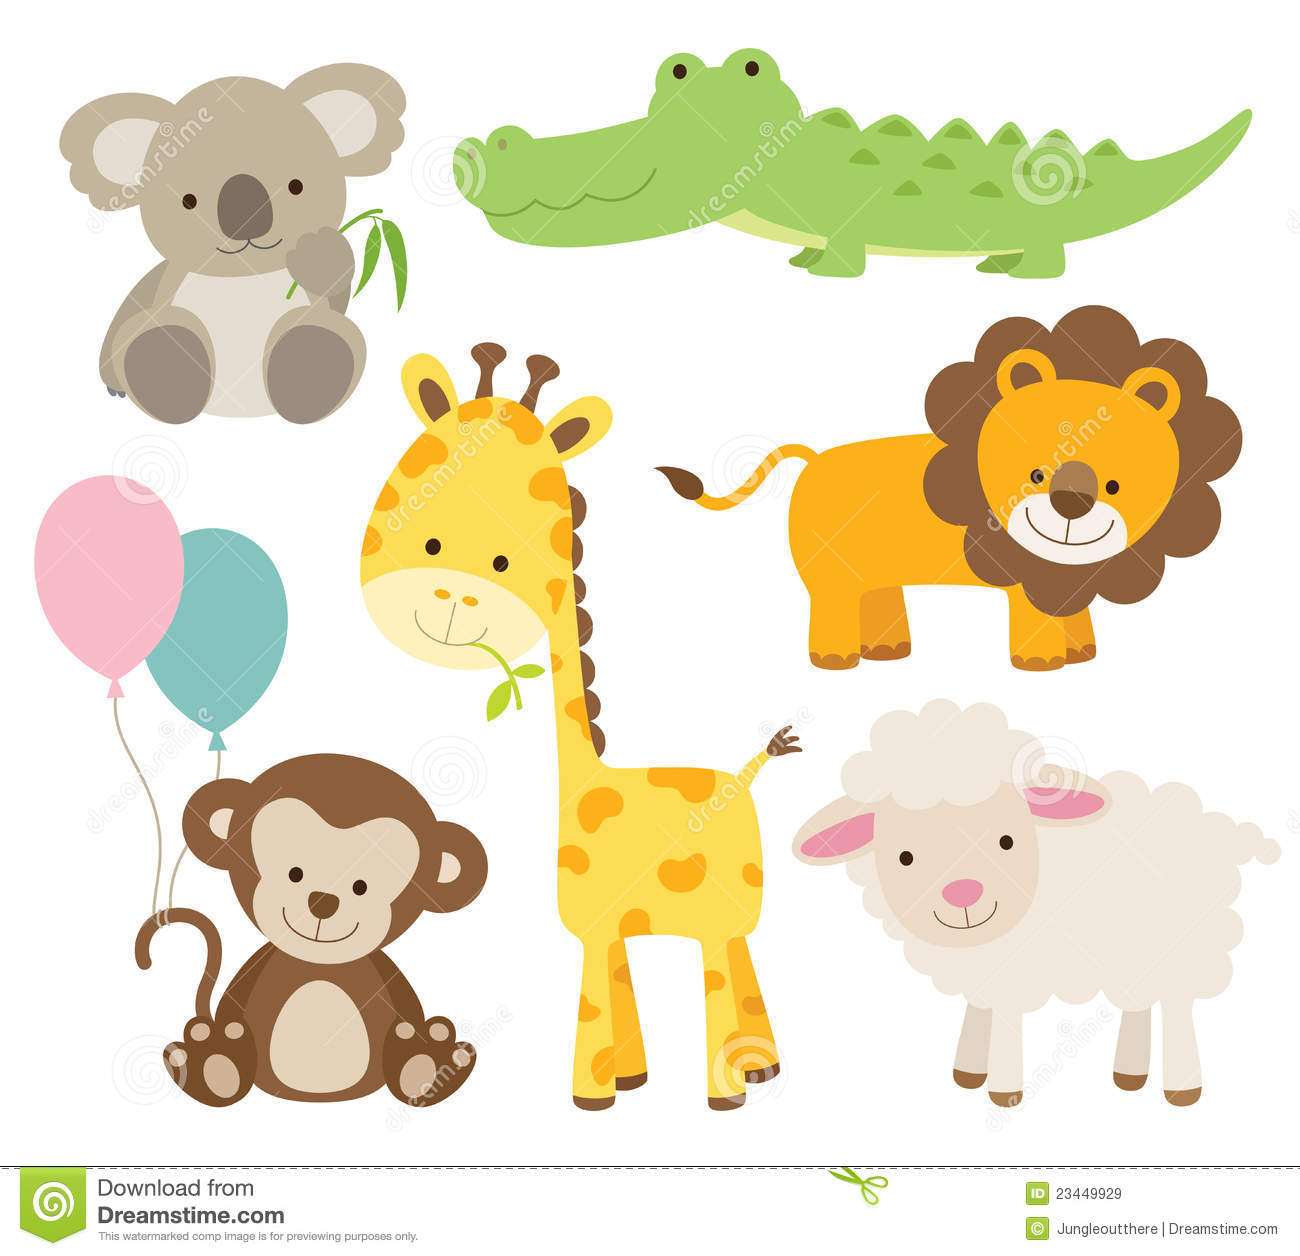 Baby Animal Clipart Baby .-Baby Animal Clipart Baby .-4